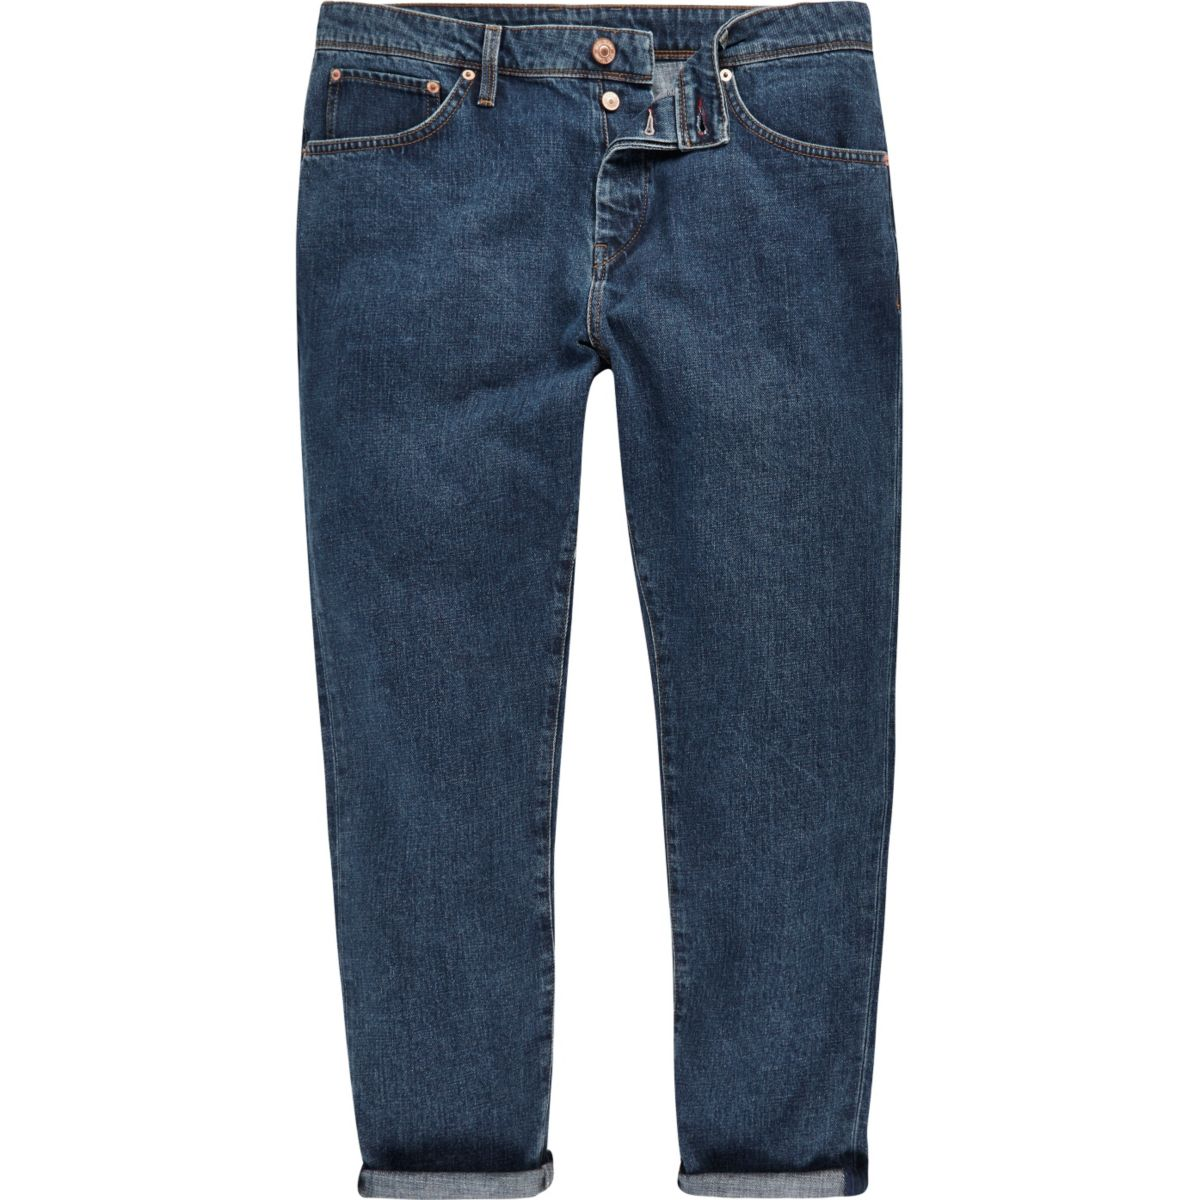 Vintage blue Jimmy slim tapered jeans